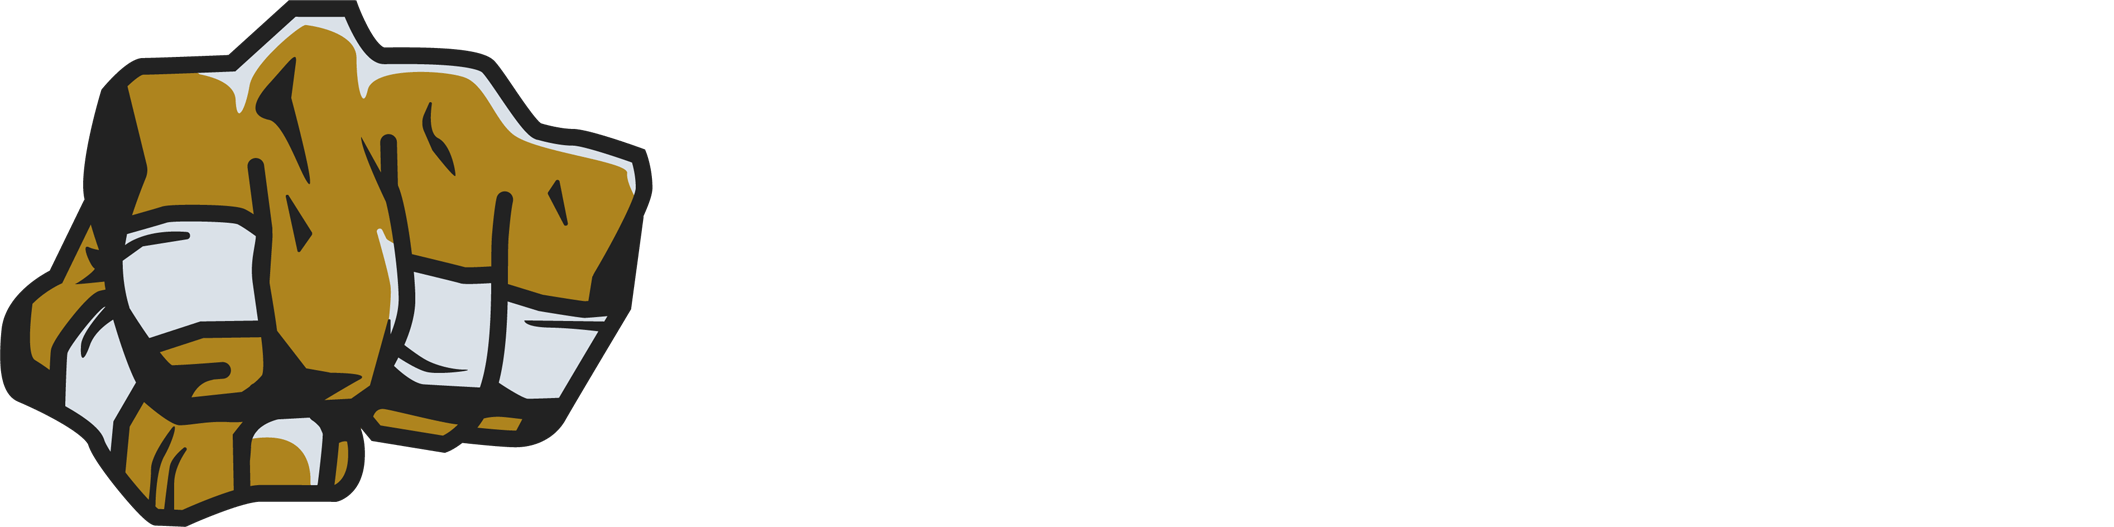 Bulletproof For BJJ